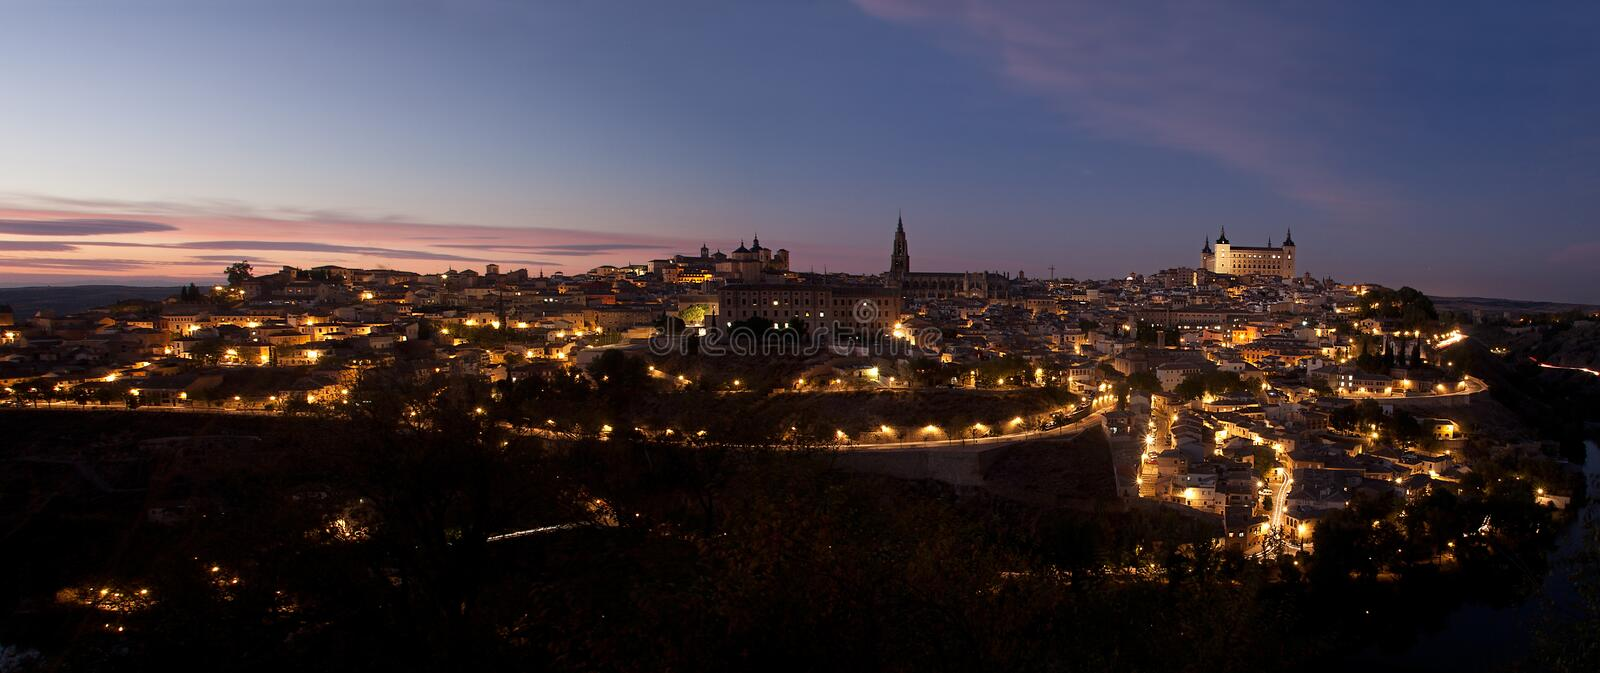 Skyline de Toledo foto de stock royalty free